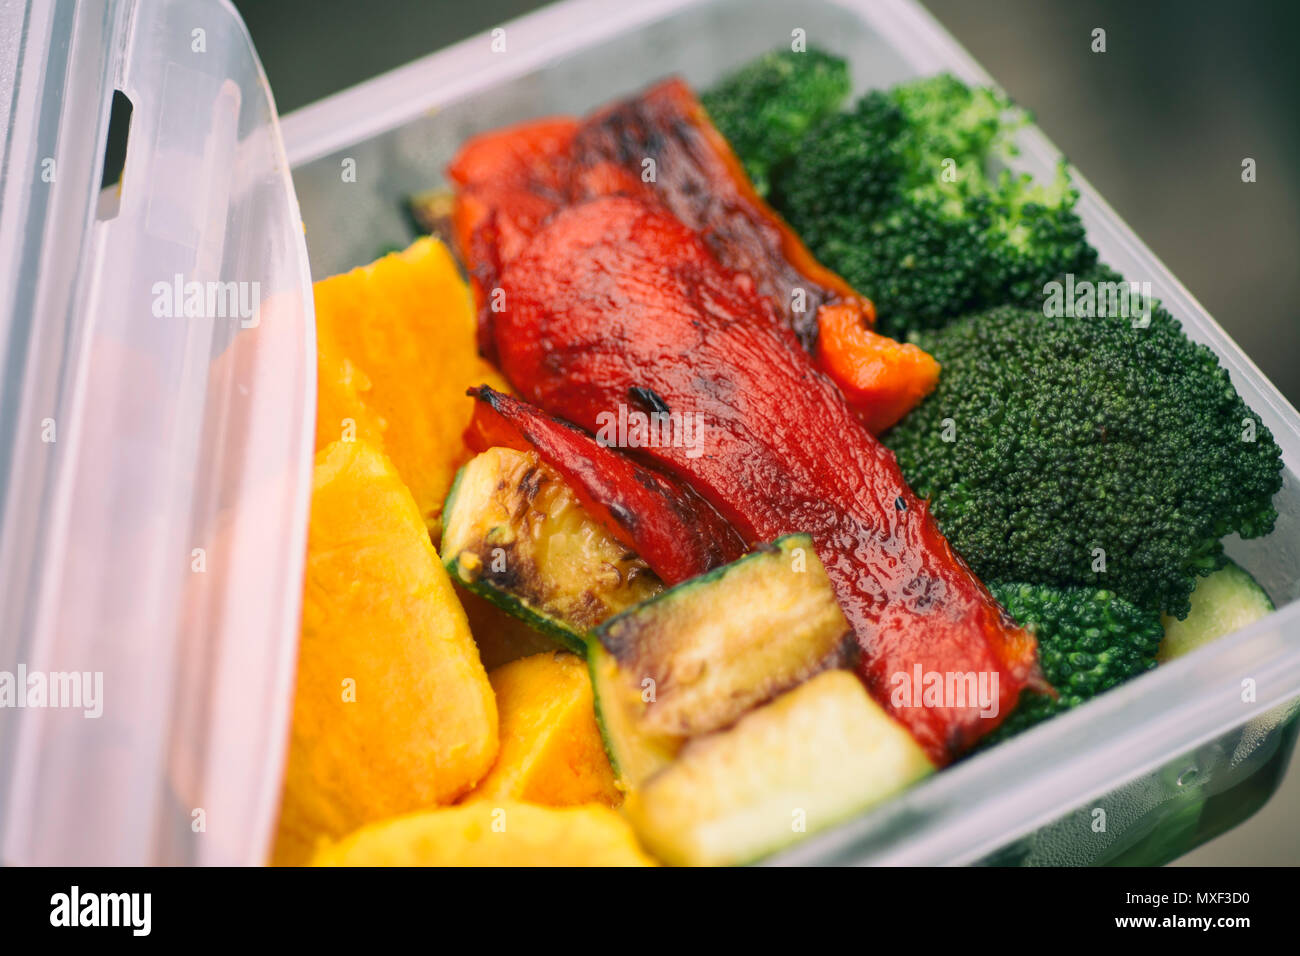 Packed Lunch, Roasted Vegetables Red Bell Pepper Broccoli Sweet Potato Zucchini in Tupperware - Stock Image